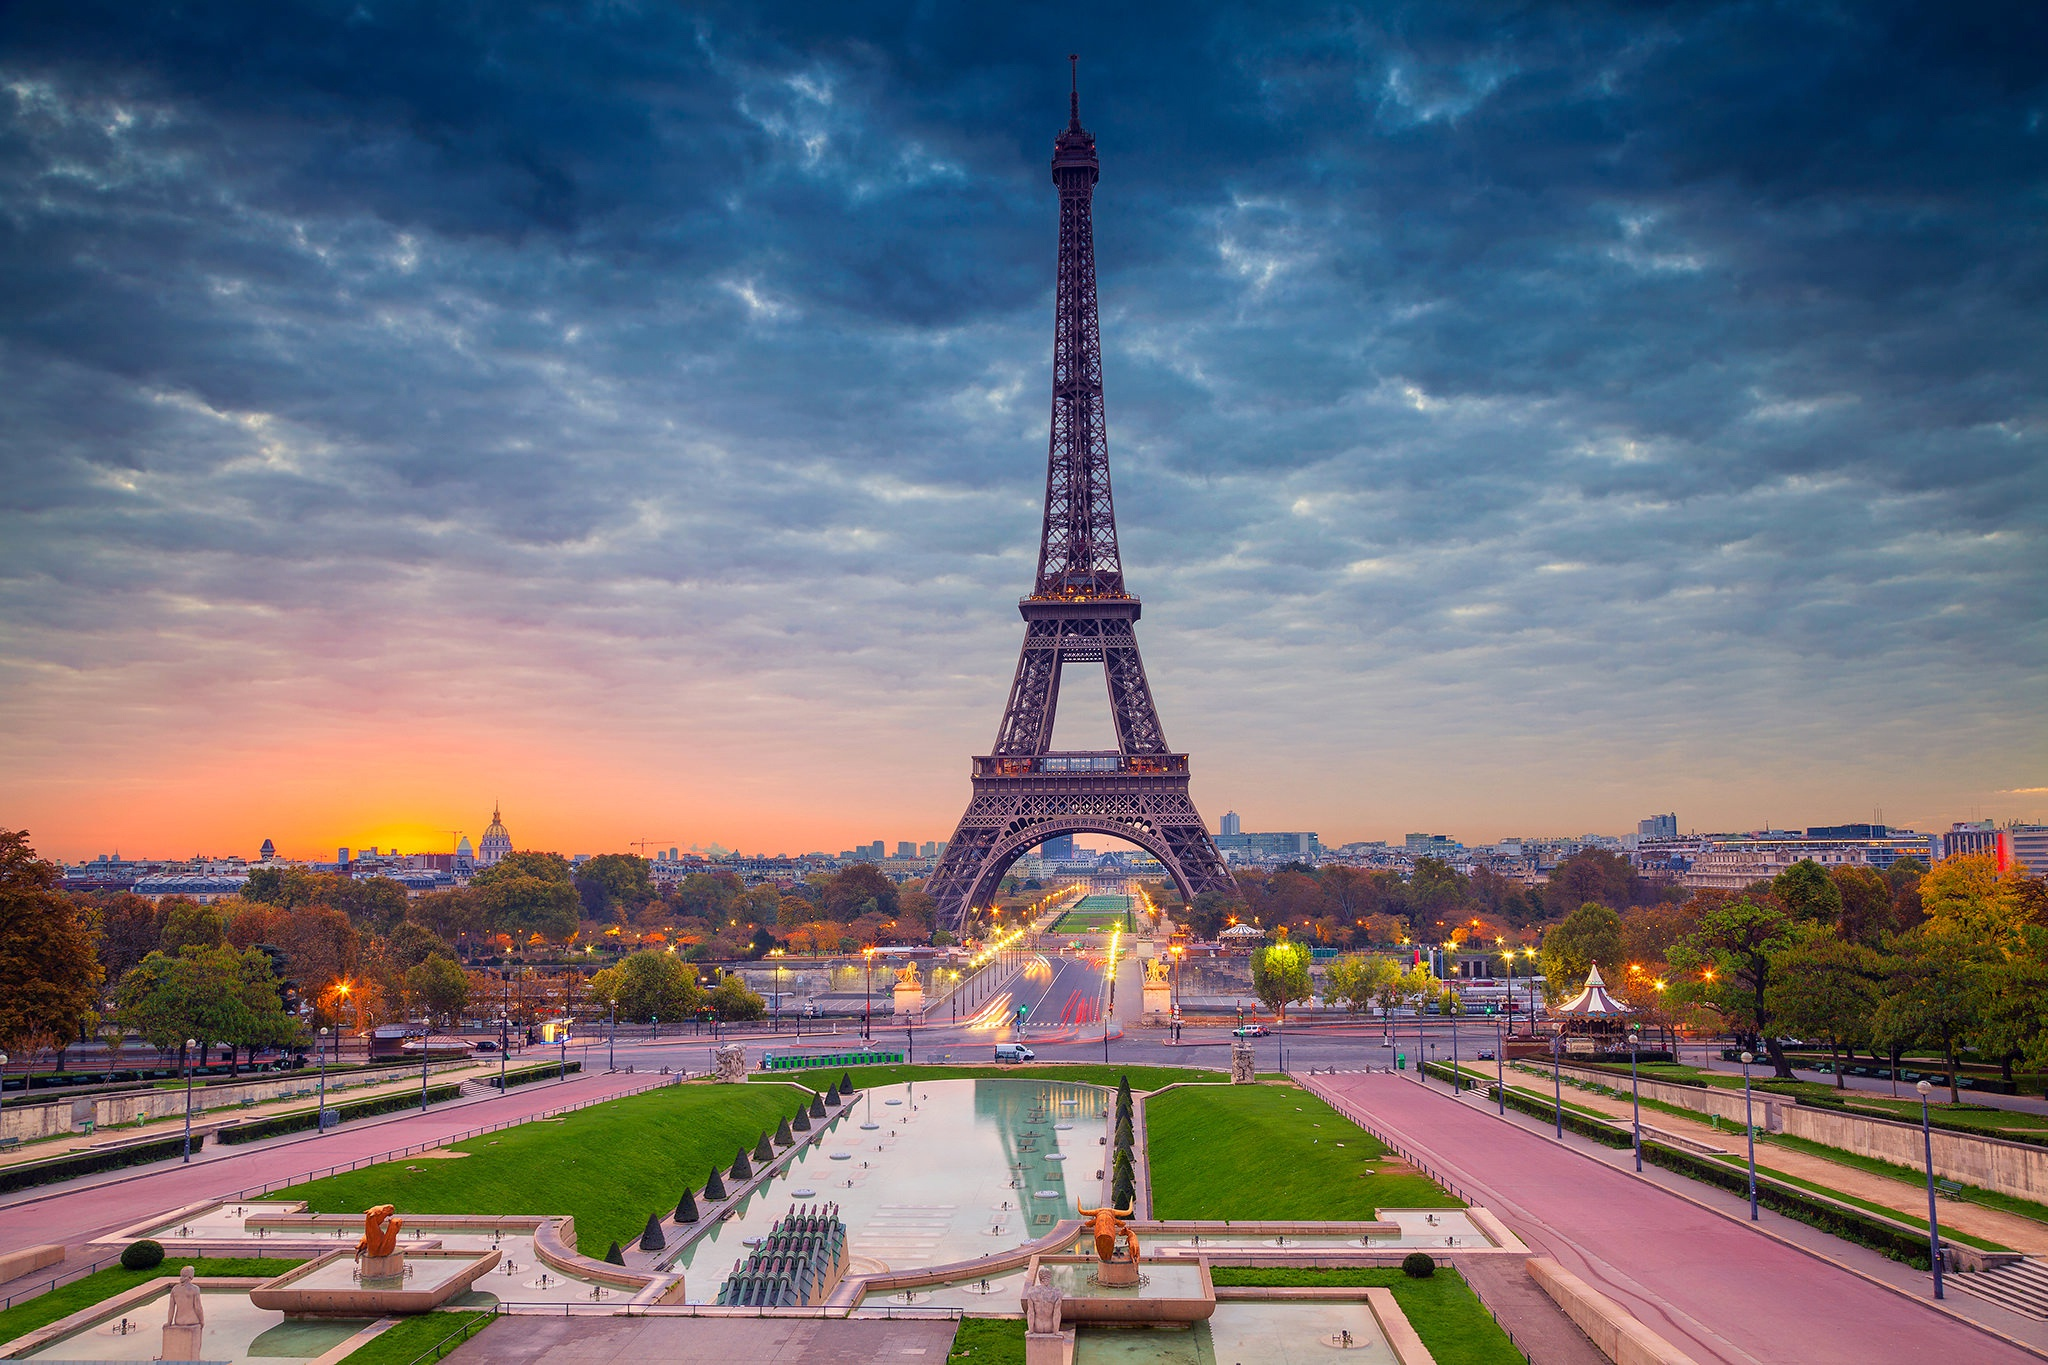 1600x1200 Eiffel Tower Paris Beautiful View 1600x1200 Resolution Hd 4k Wallpapers Images Backgrounds Photos And Pictures